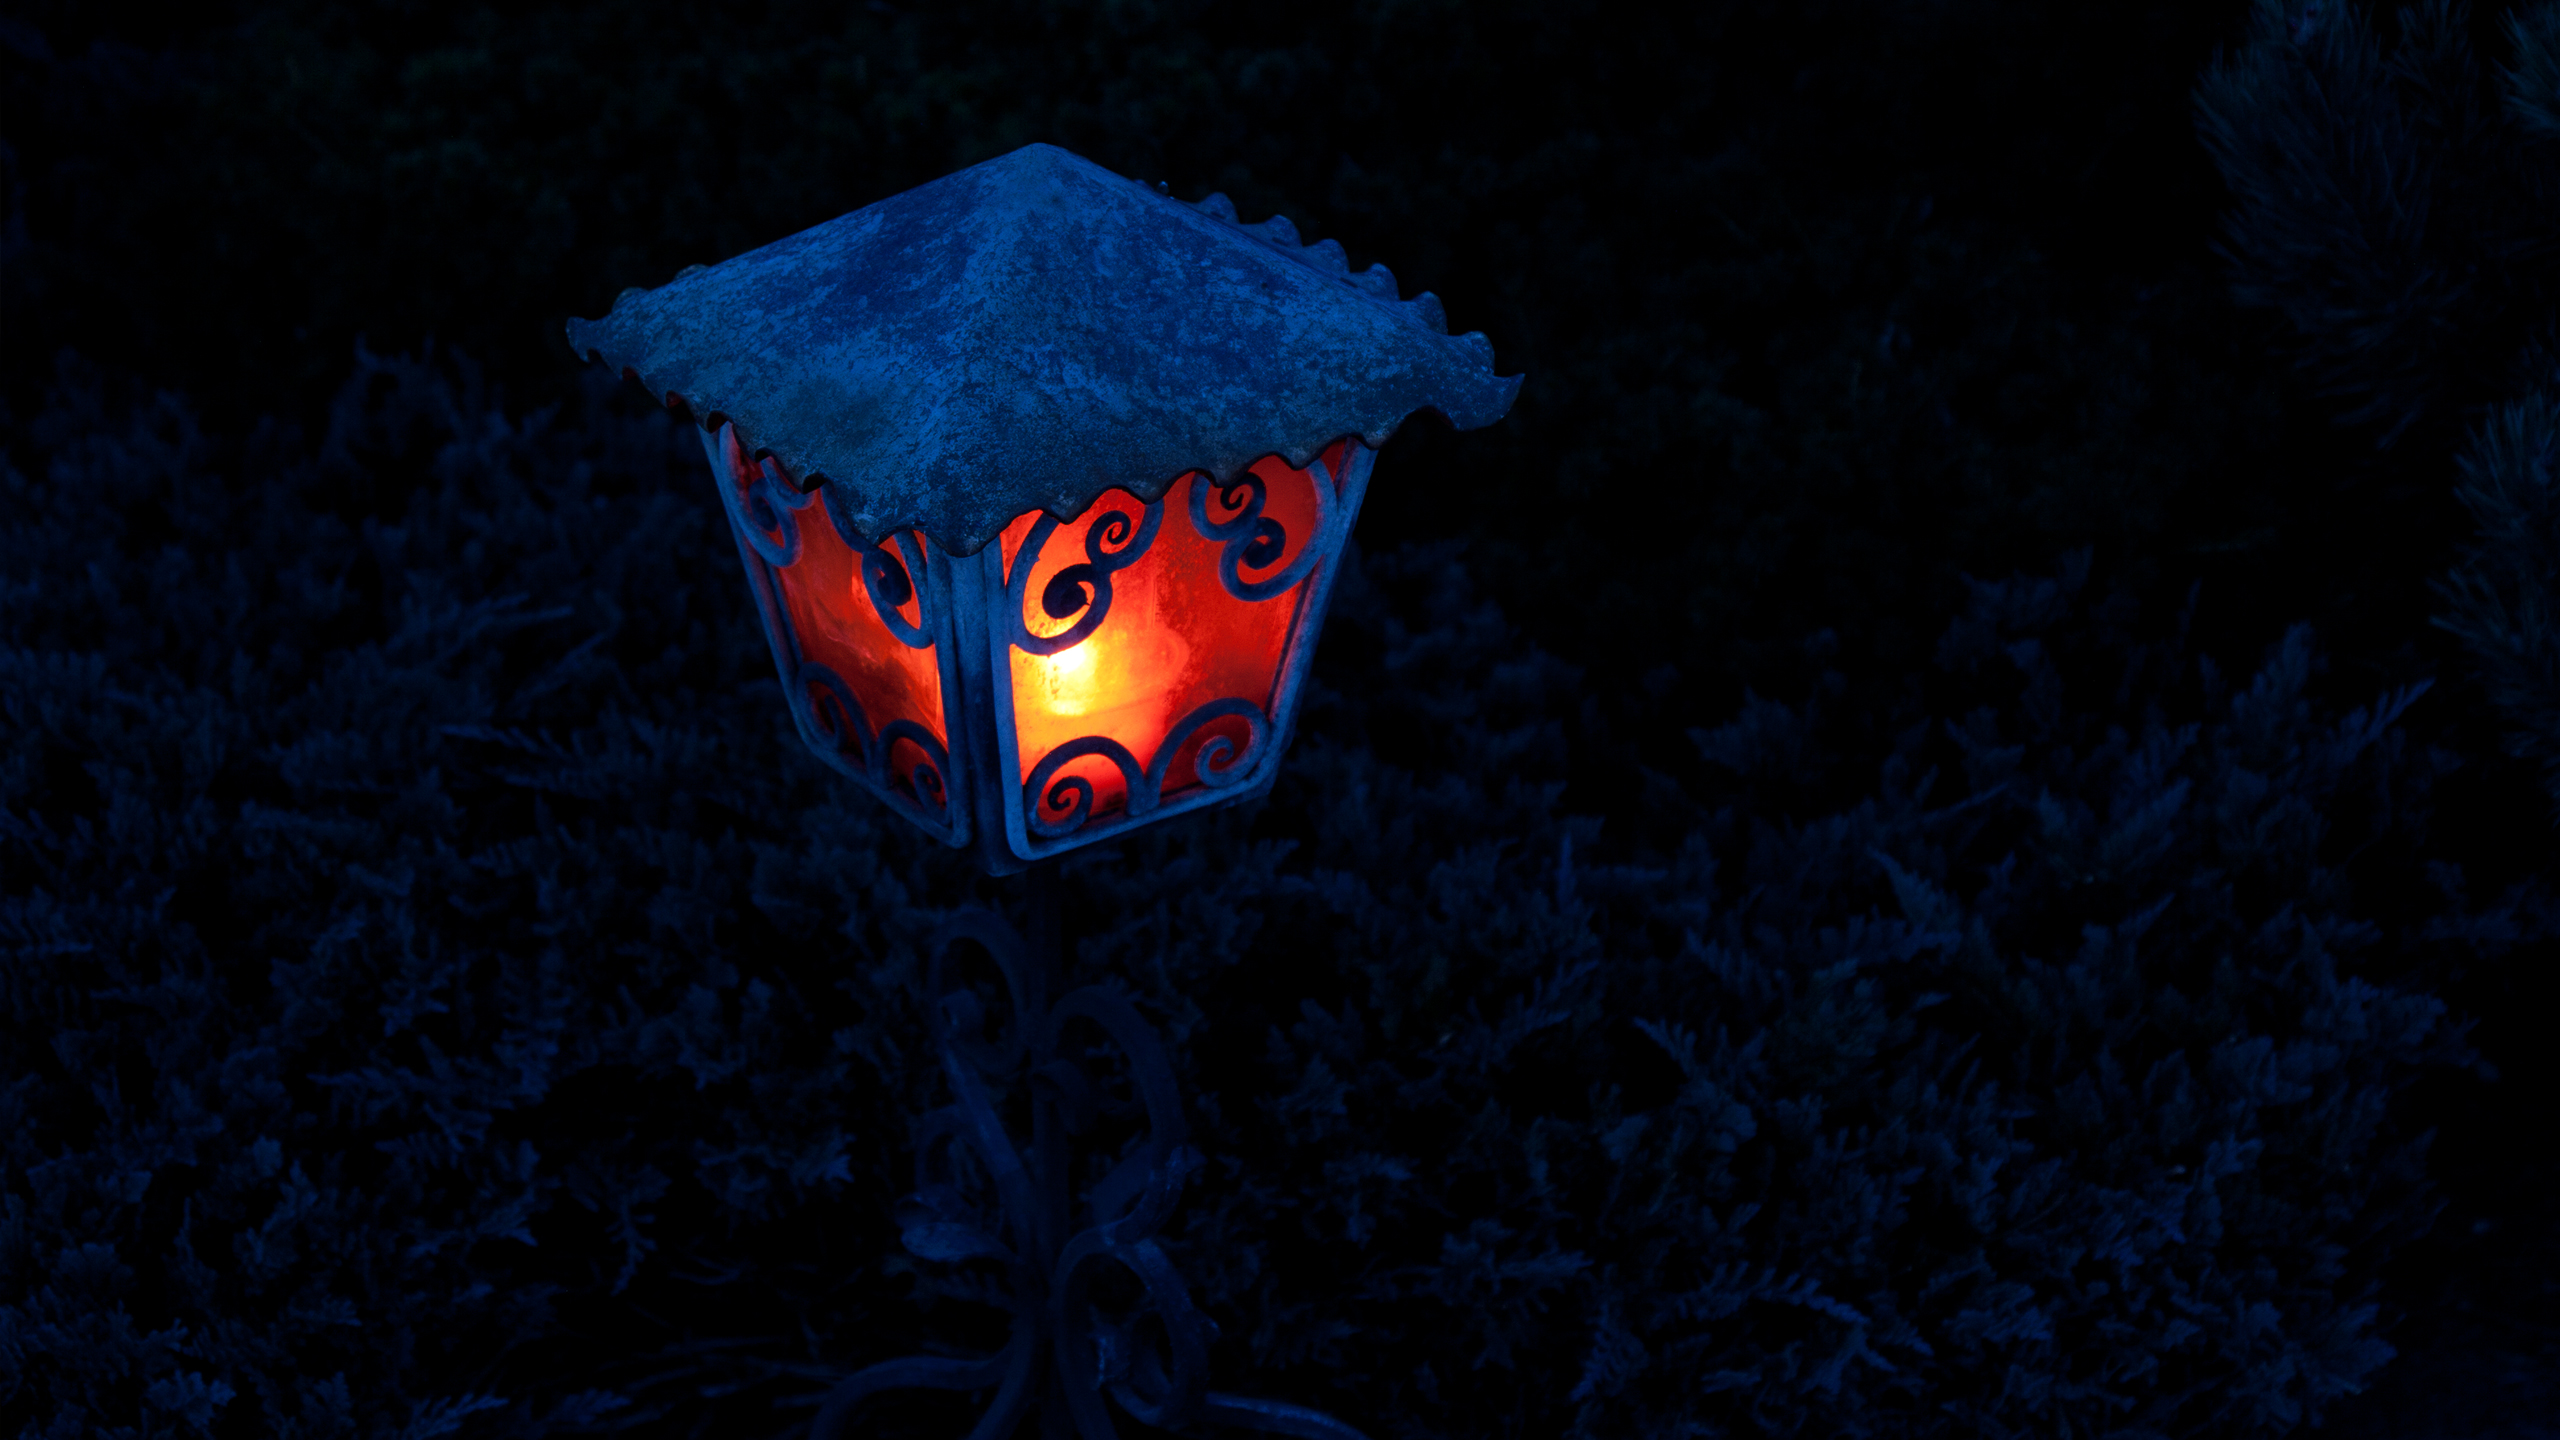 latern_wallpaper_2560x1440